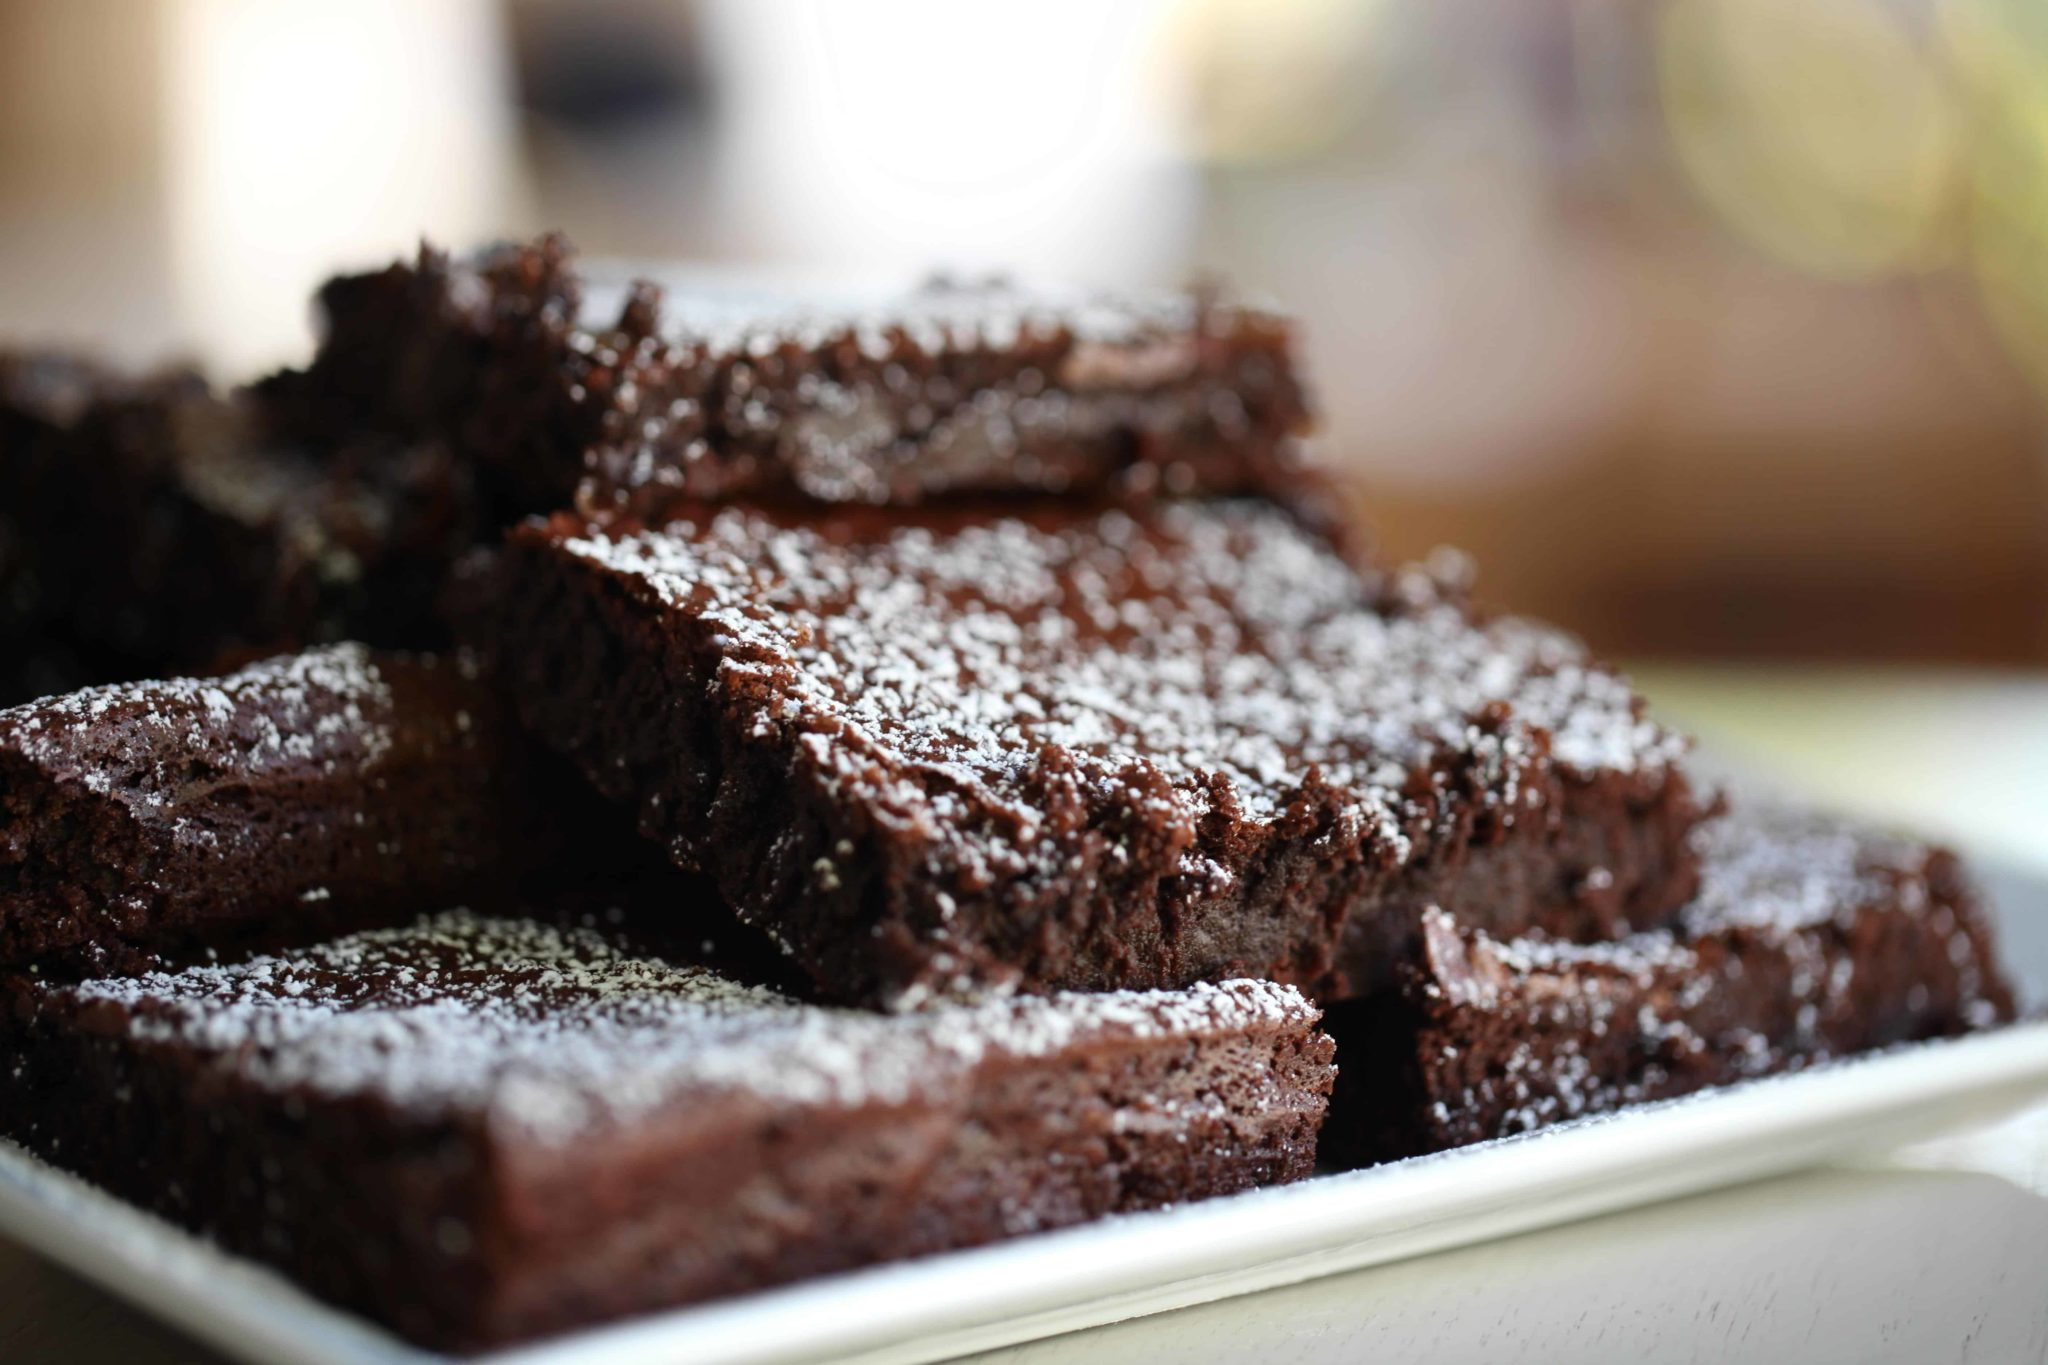 Beth's Foolproof Fudgy Brownie Recipe